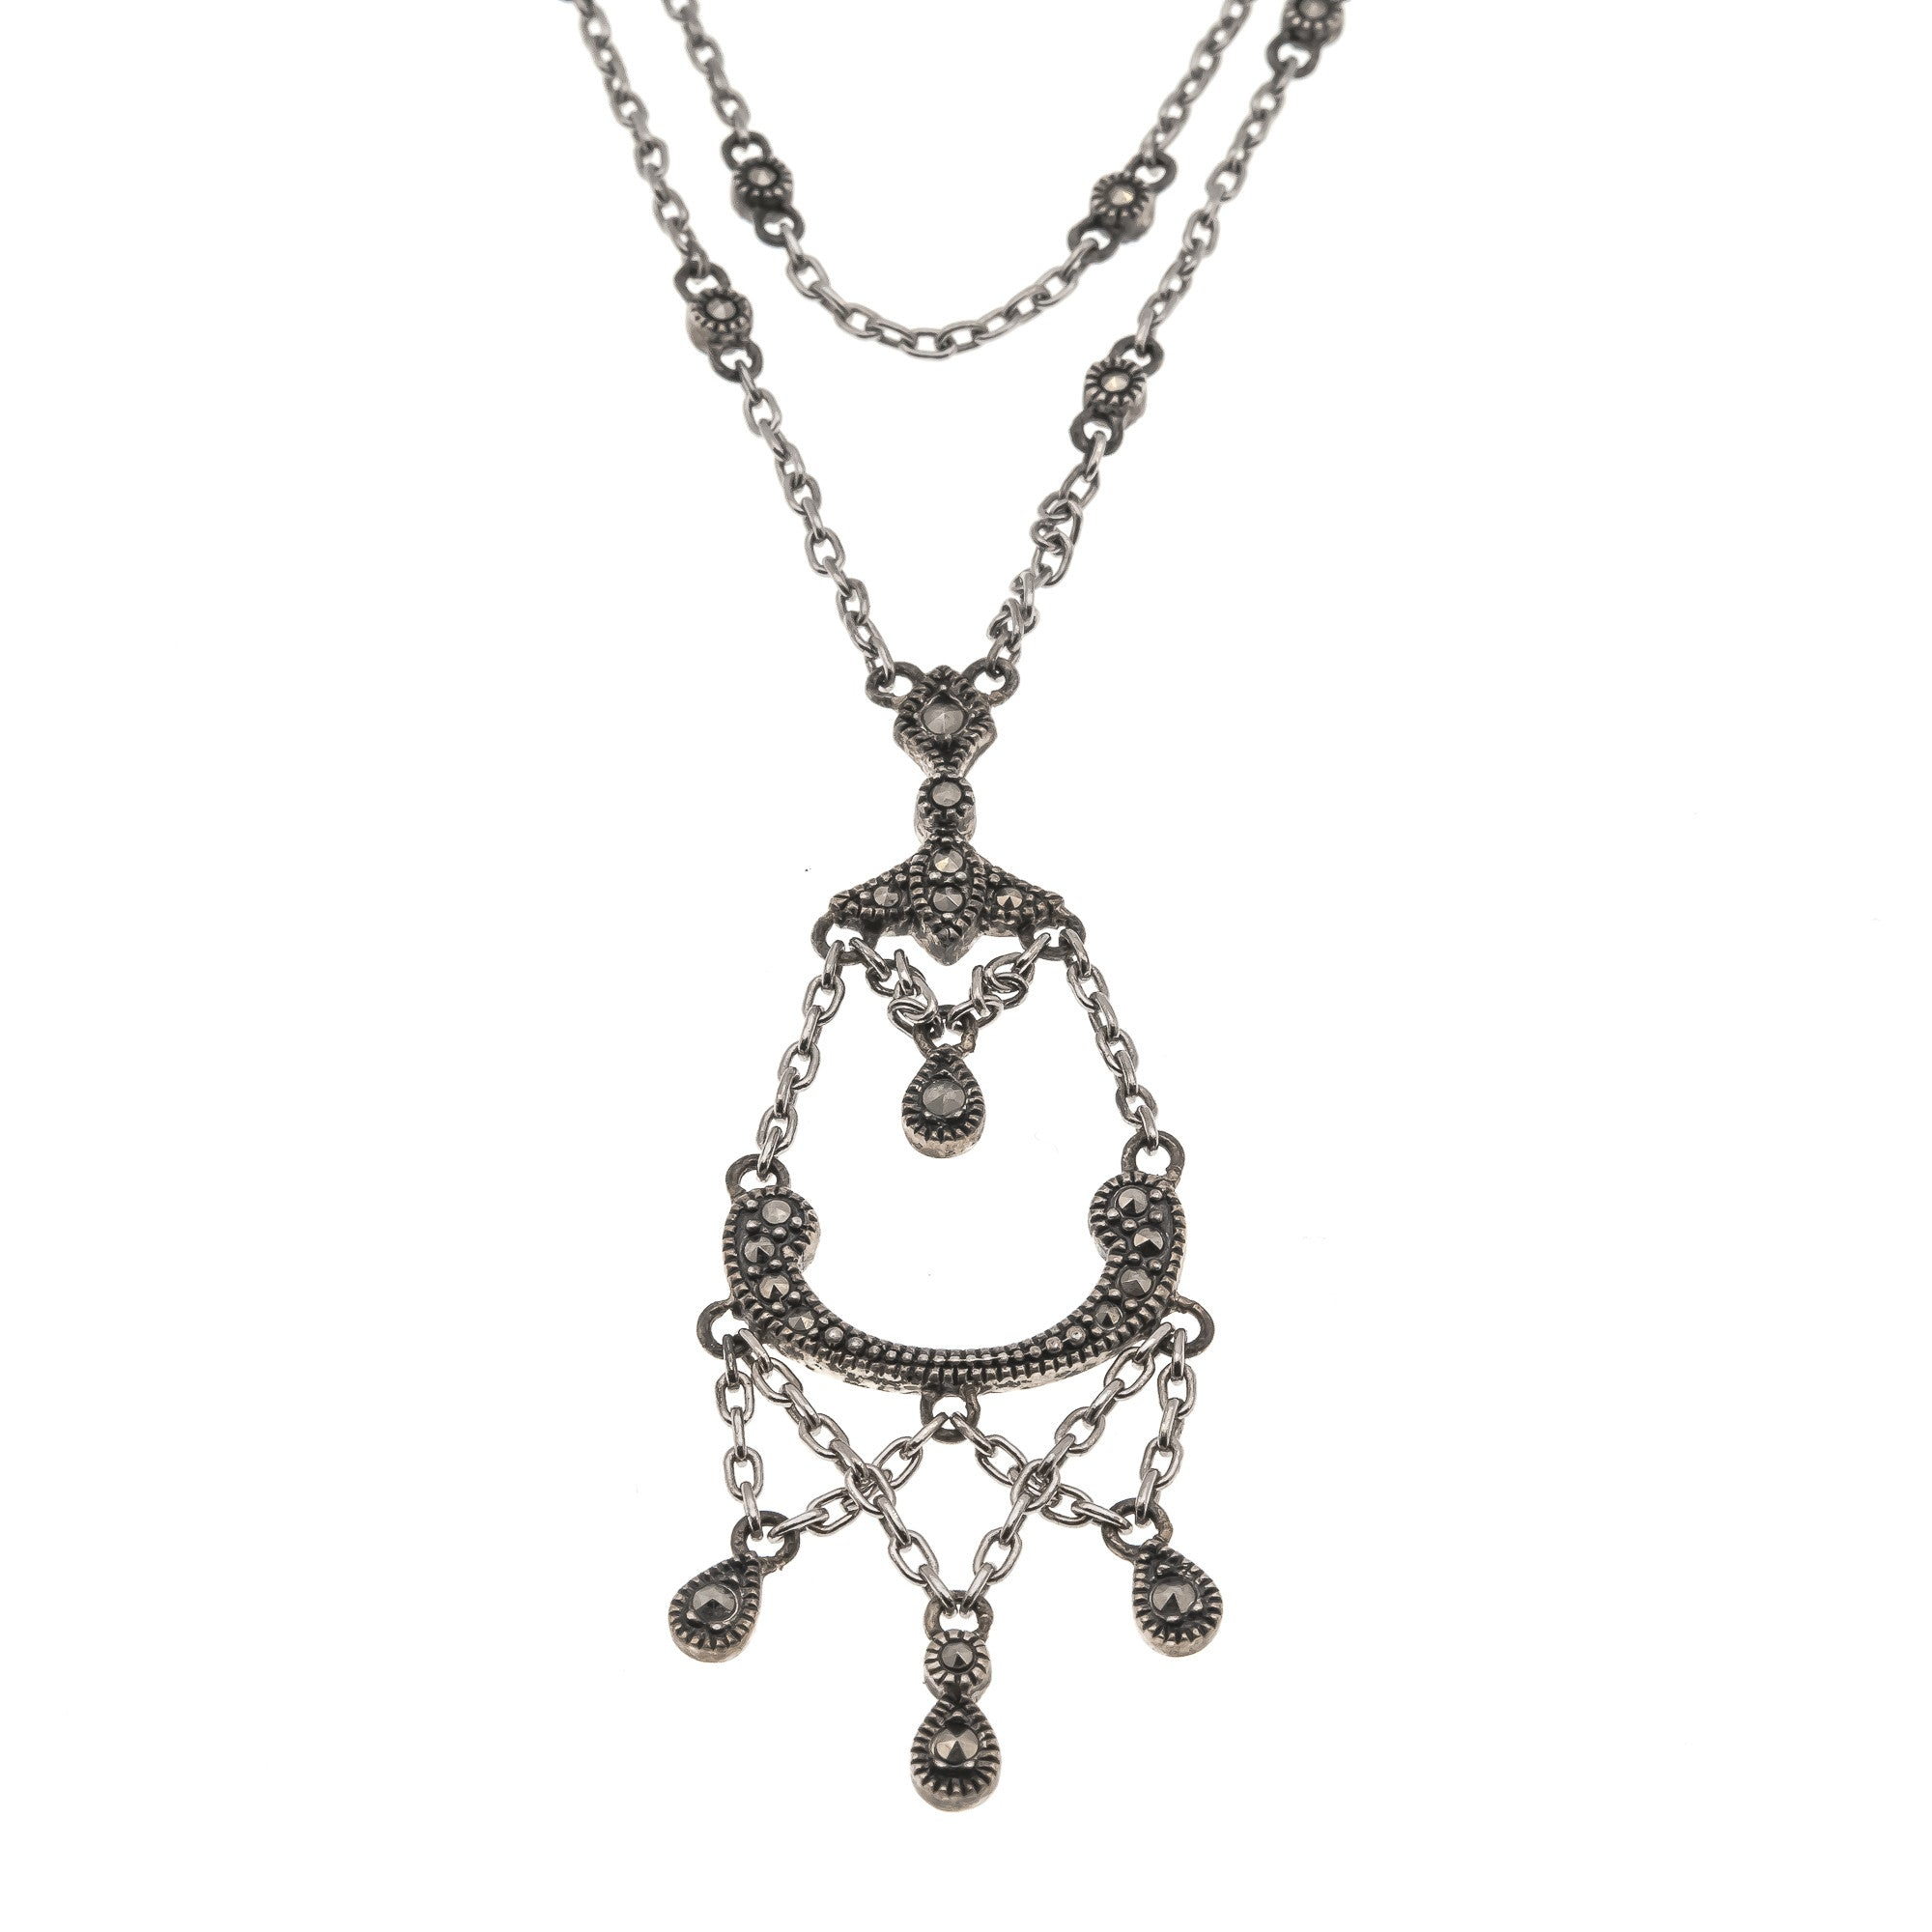 Chained Melody - Vintage Sterling Silver & Marcasite Necklace